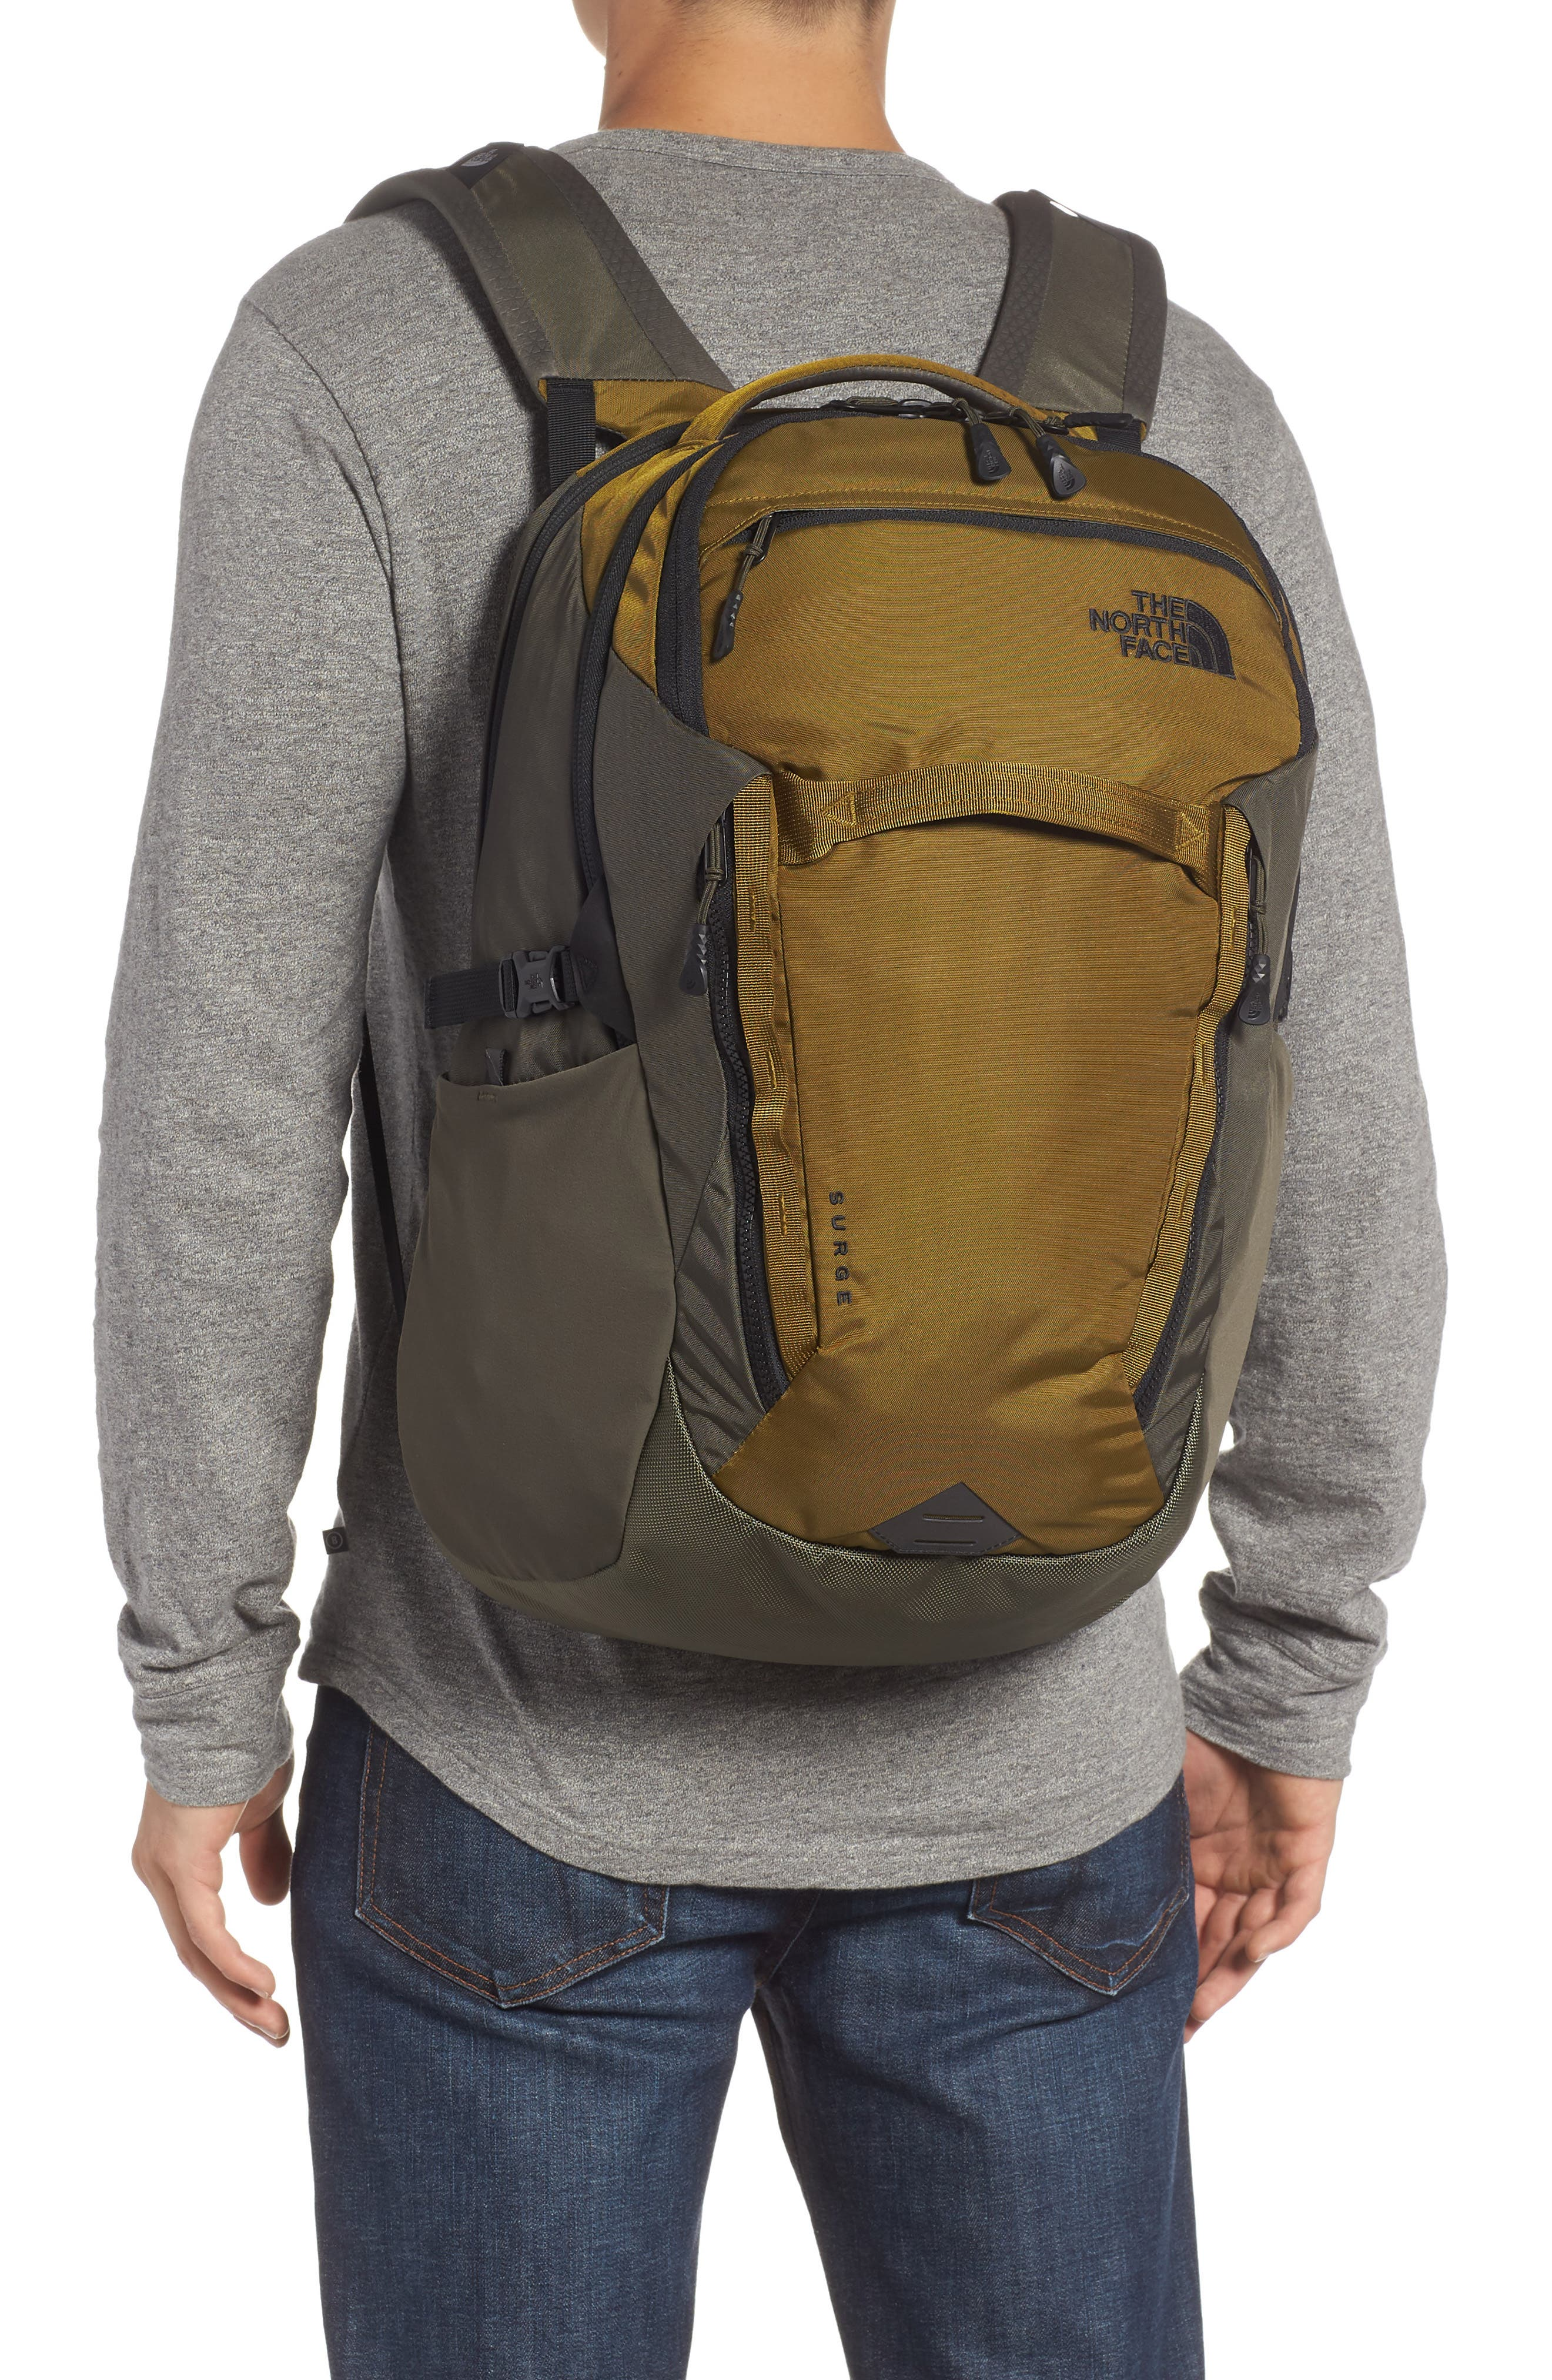 Surge Backpack,                             Alternate thumbnail 2, color,                             FIR GREEN/ NEW TAUPE GREEN